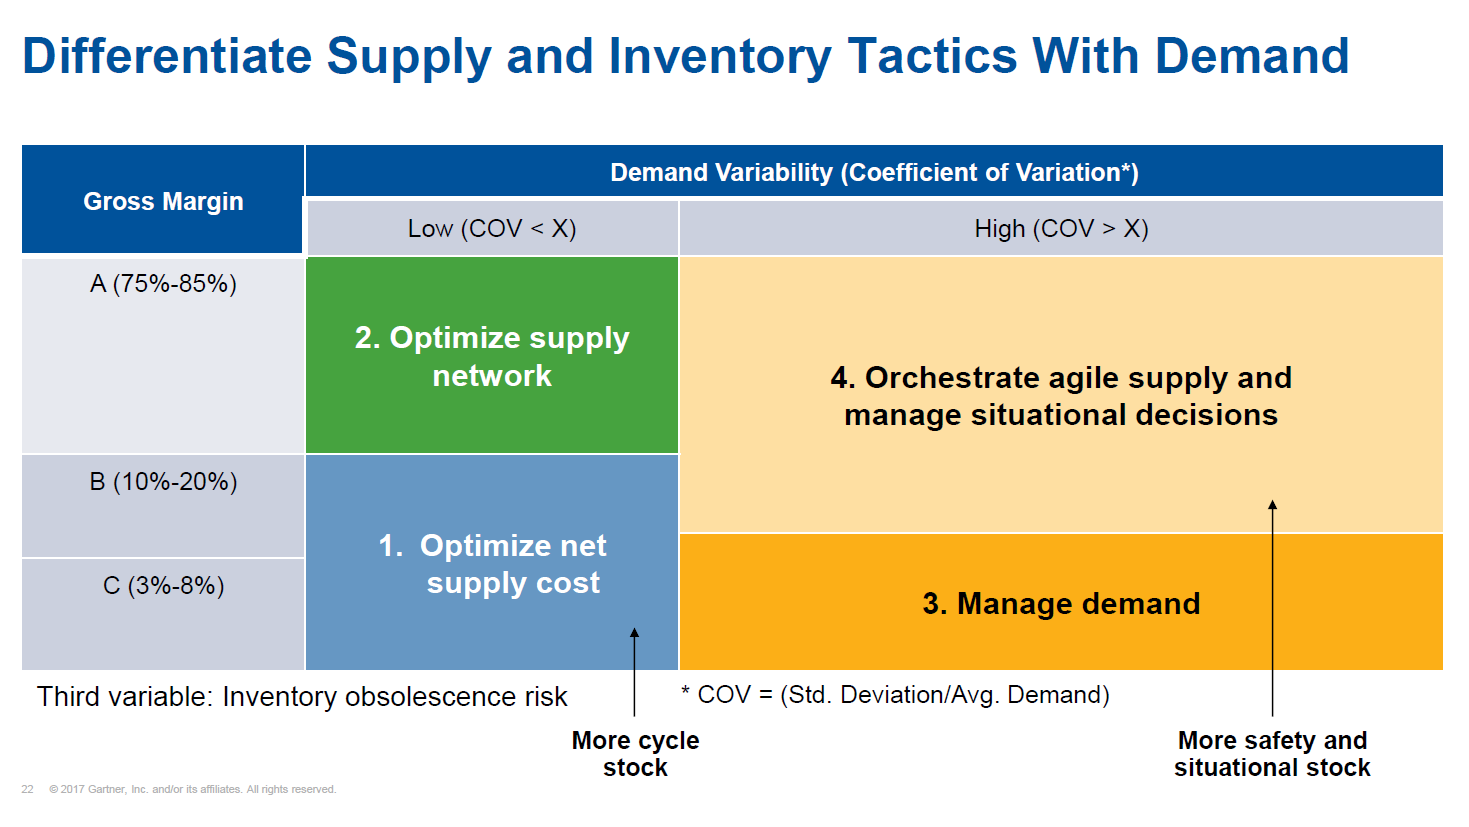 Segmenting Your Inventory by Gross Margin and Demand Variability